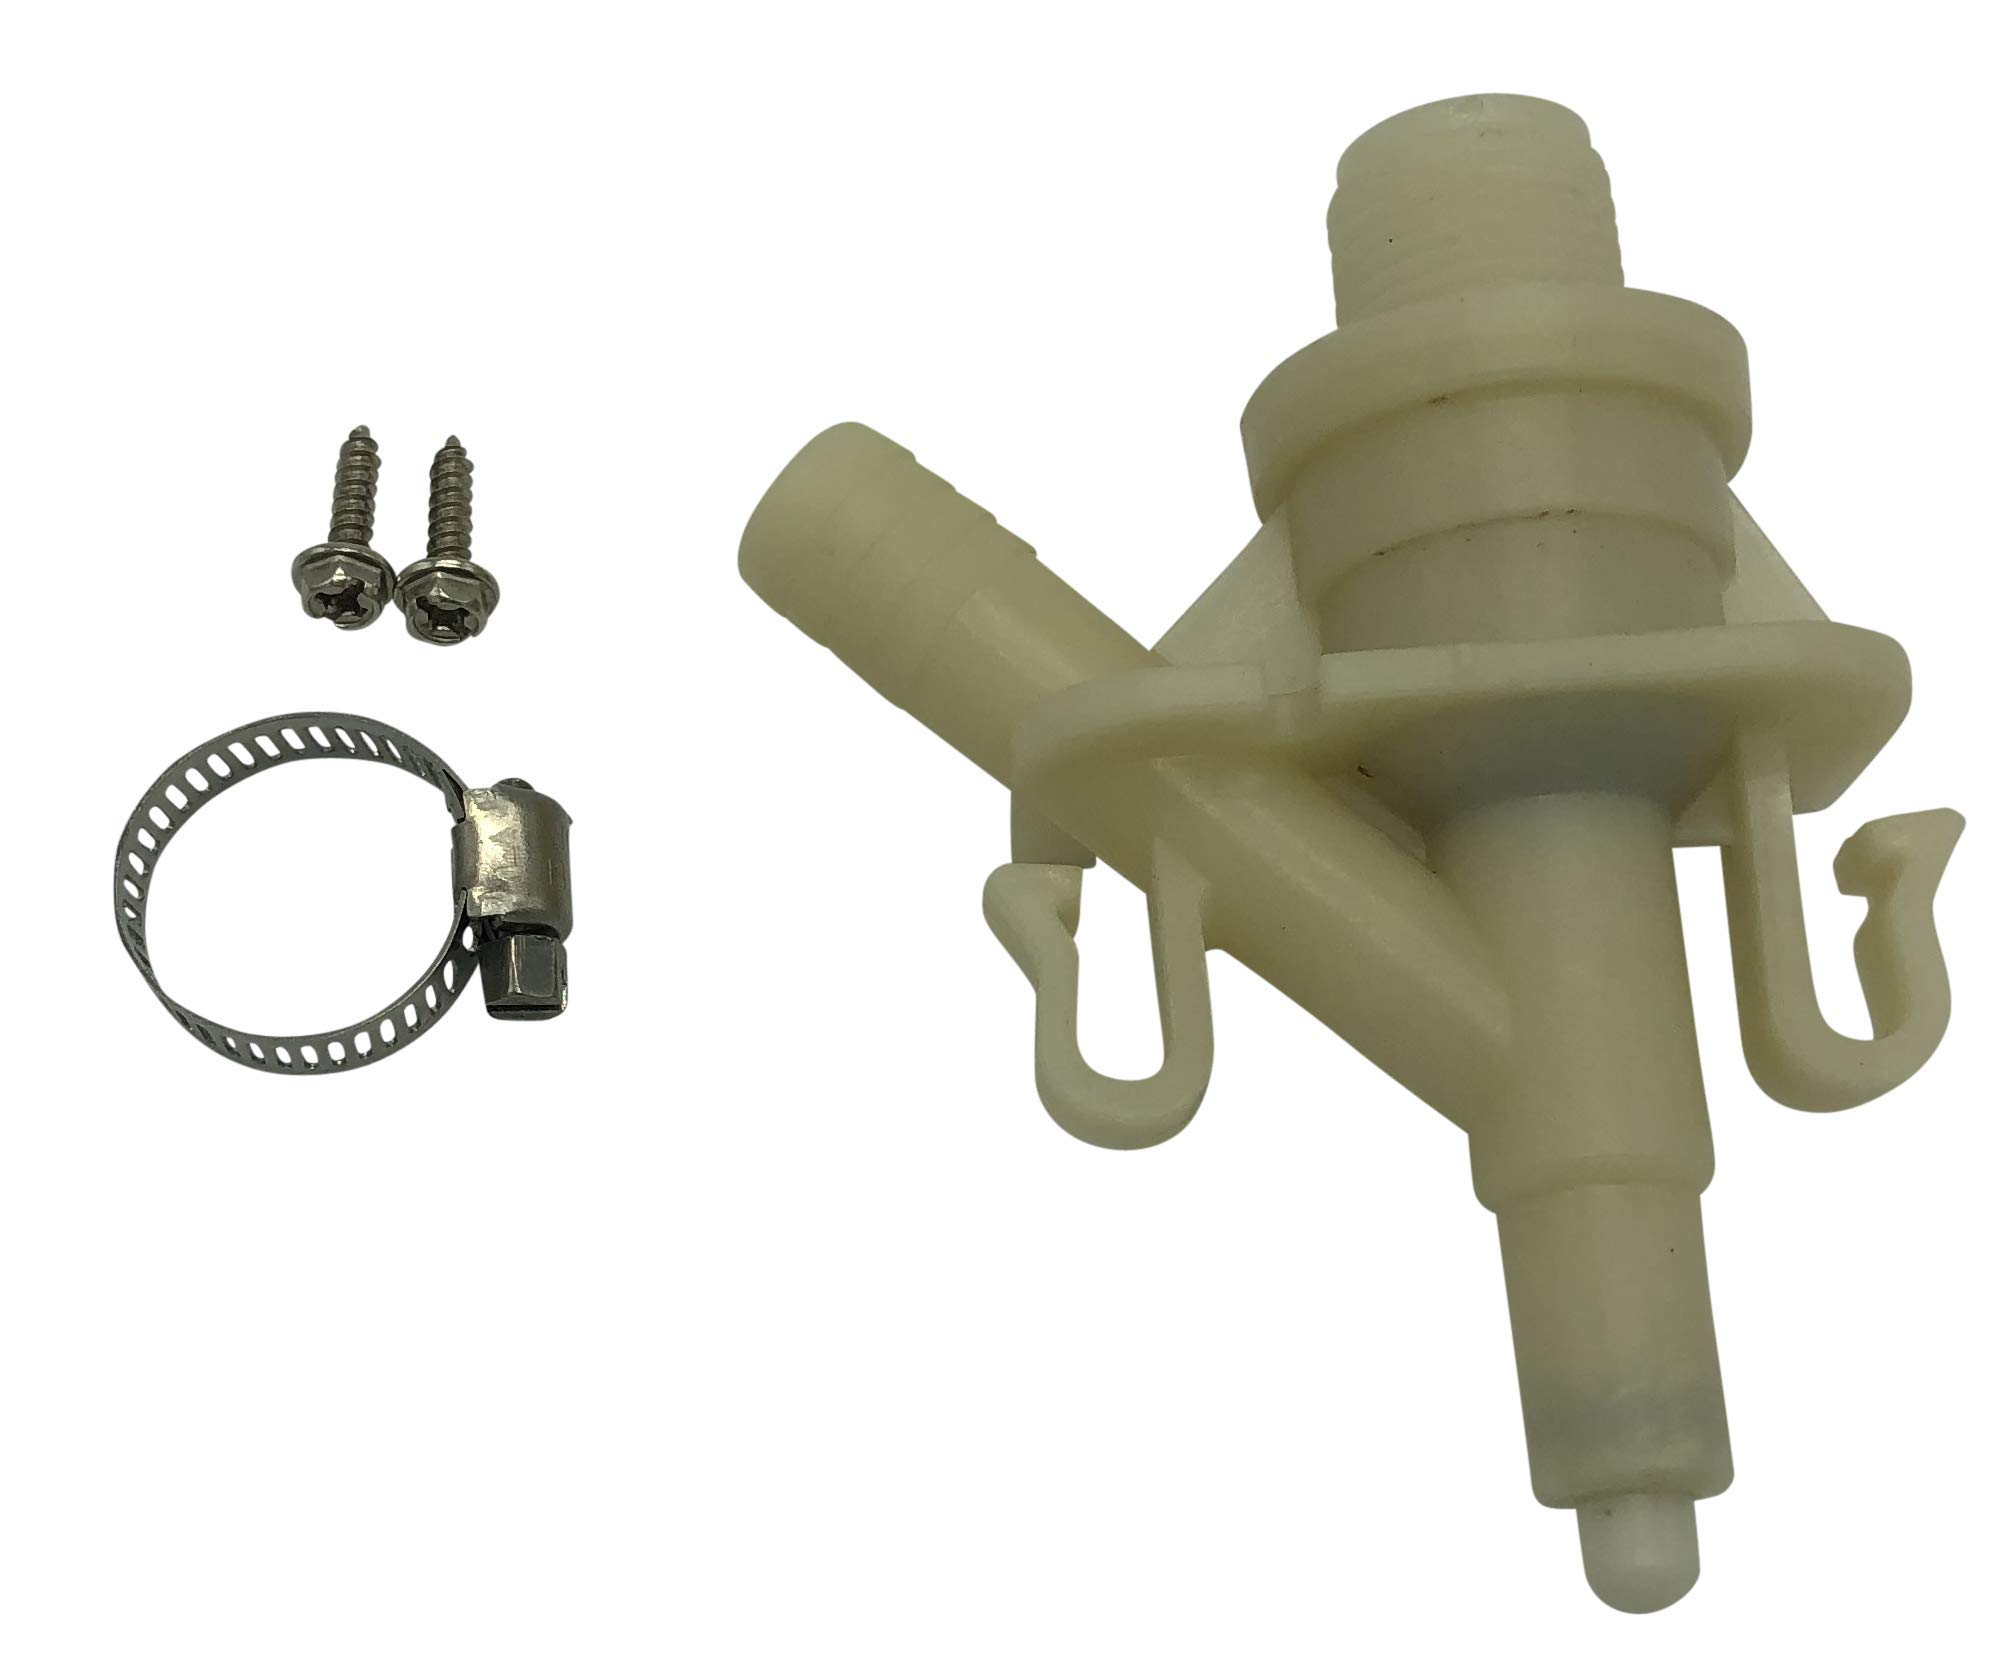 Beech Lane Upgraded Water Valve Kit for Dometic Toilets 300, 310, and 320, Upgraded for High Performance in Freezing Conditions, Improved Valve Lifespan, Compare to Dometic Toilet Valve 385311641